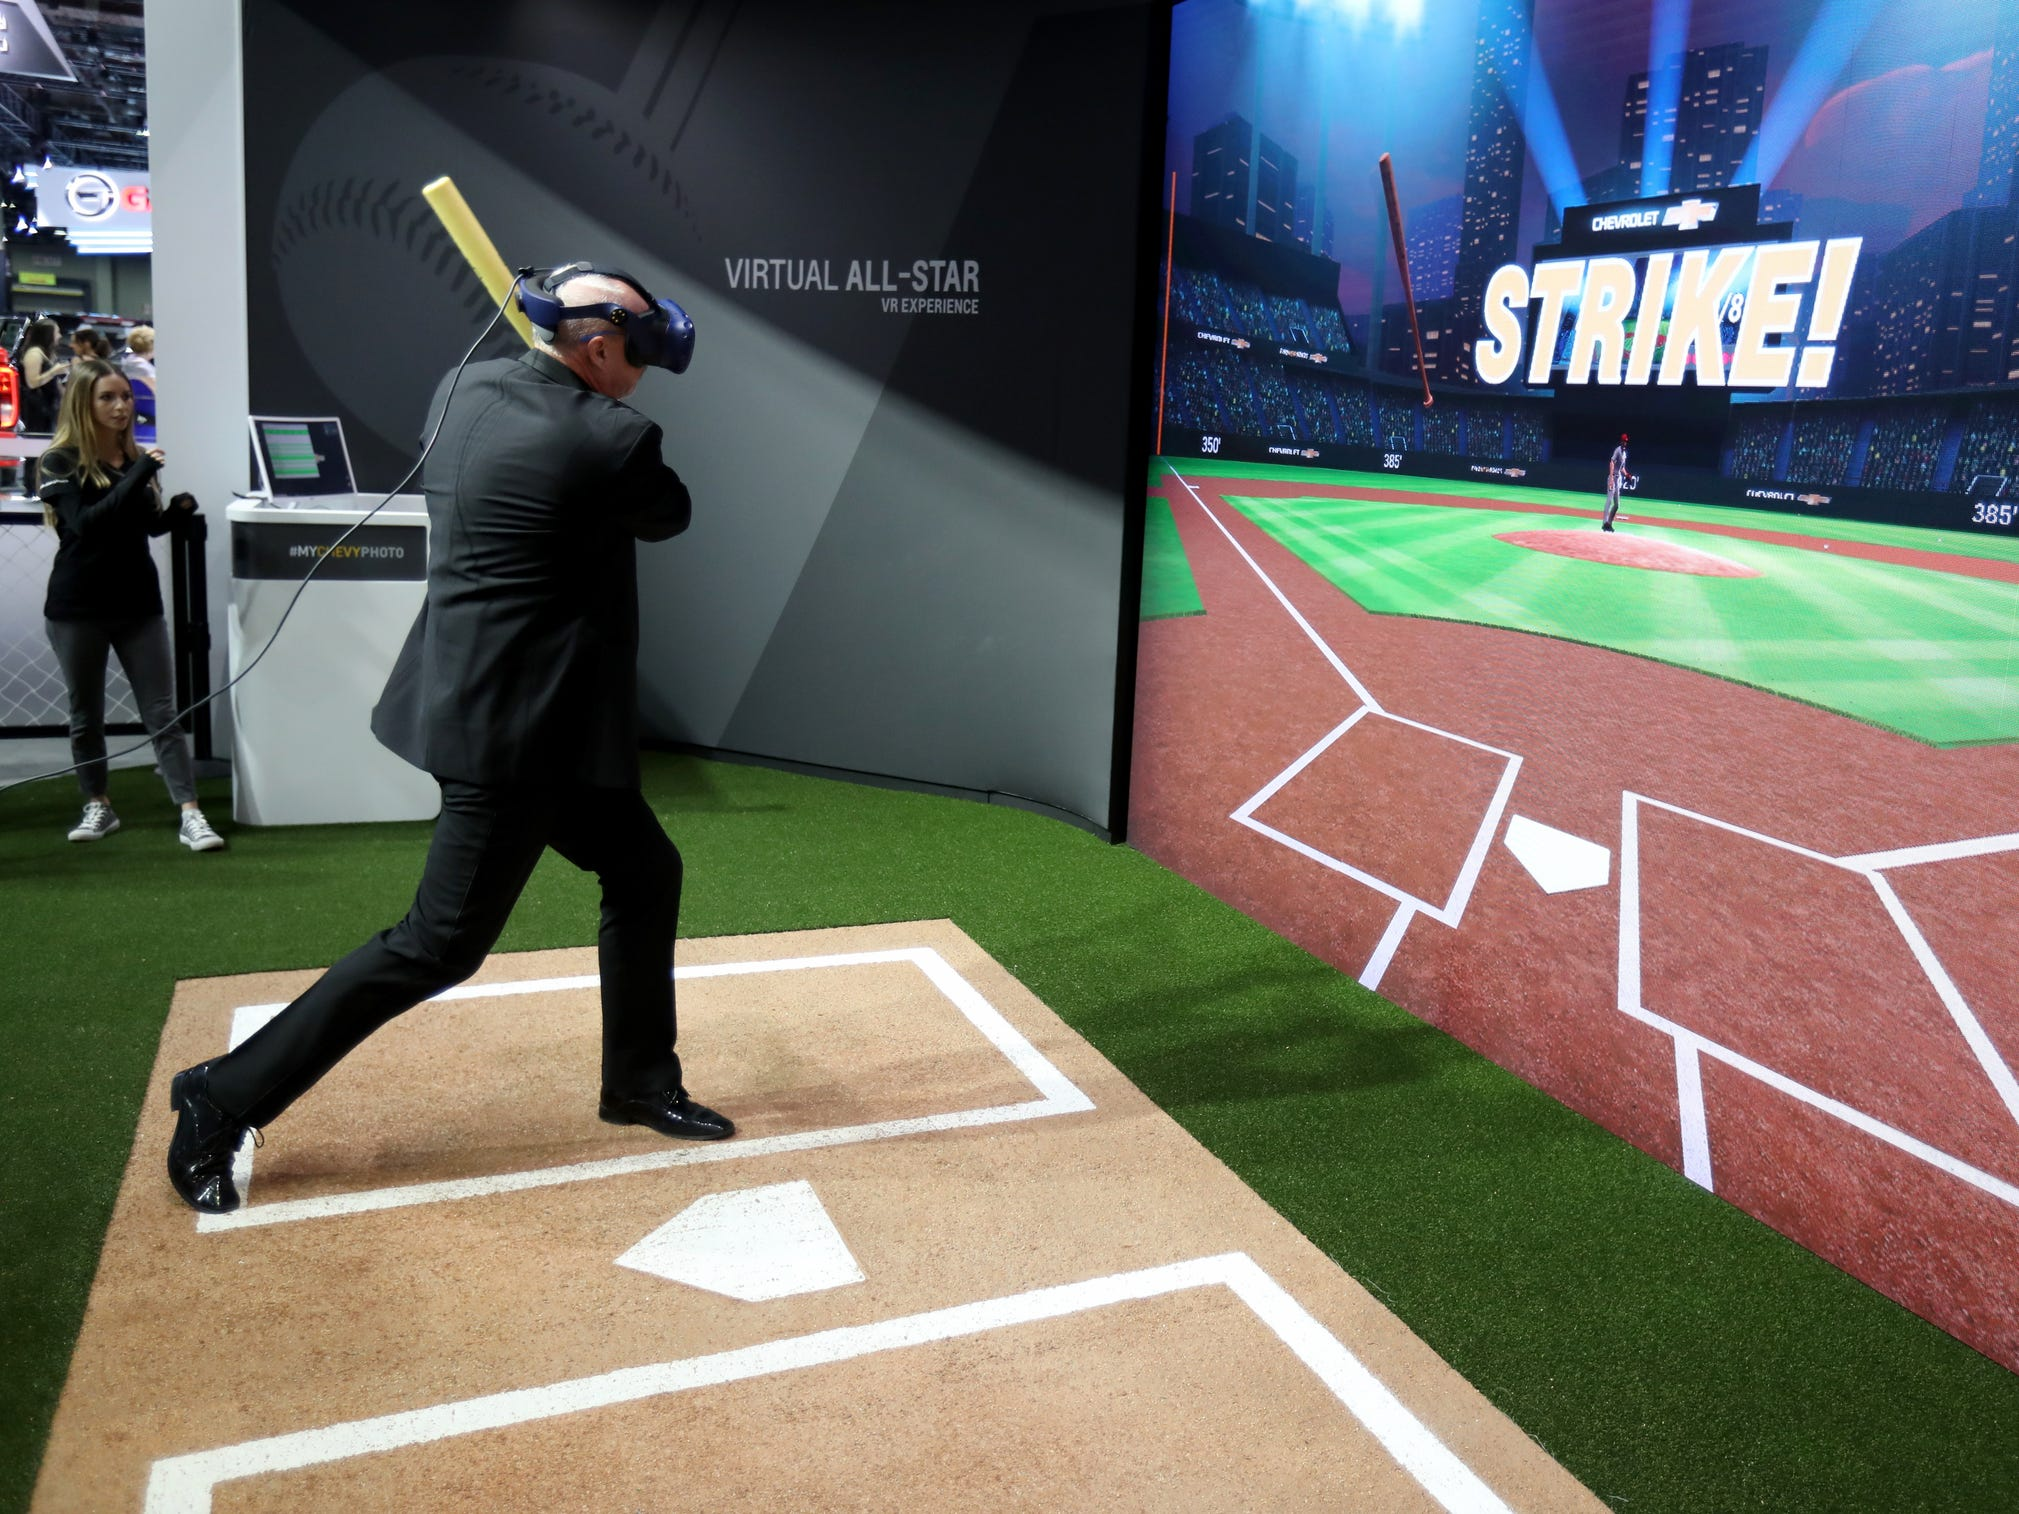 Ted Ens, of Sand Point, Michigan strikes out during a baseball virtual reality game near the GM exhibit during the 2019 North American International Auto Show Charity Preview at Cobo Center in Detroit on Friday, January 18, 2019.